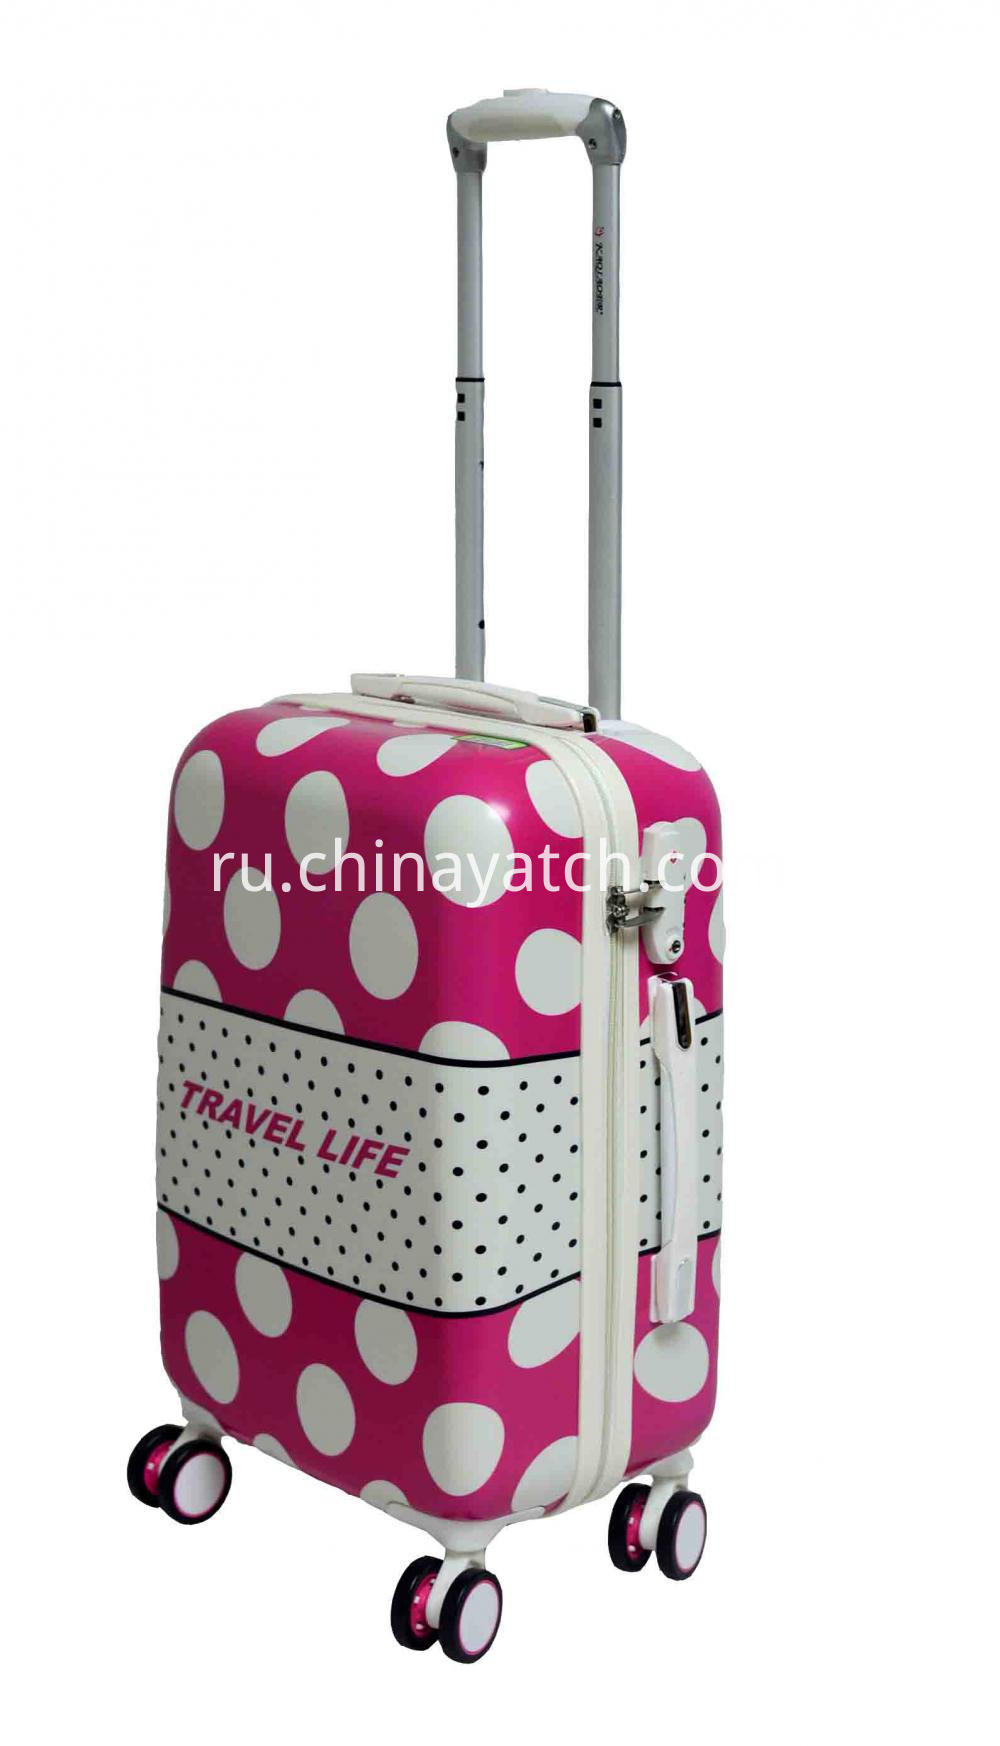 PC Luggage with Aluminum Tube